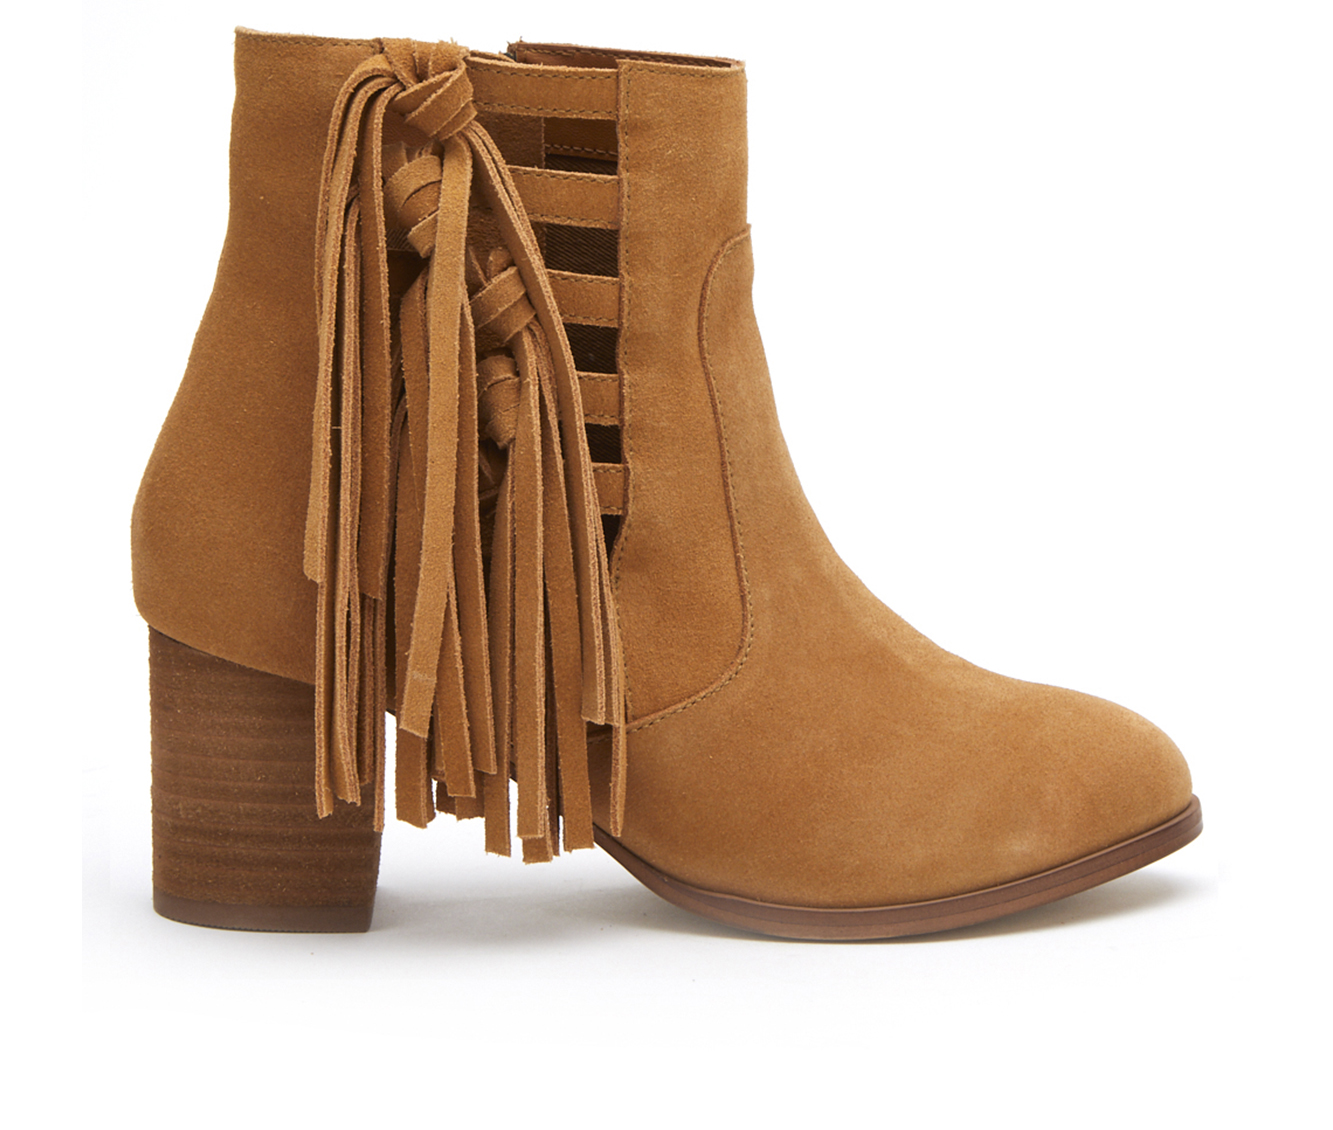 Coconuts Stroll Through Women's Boot (Brown Suede)